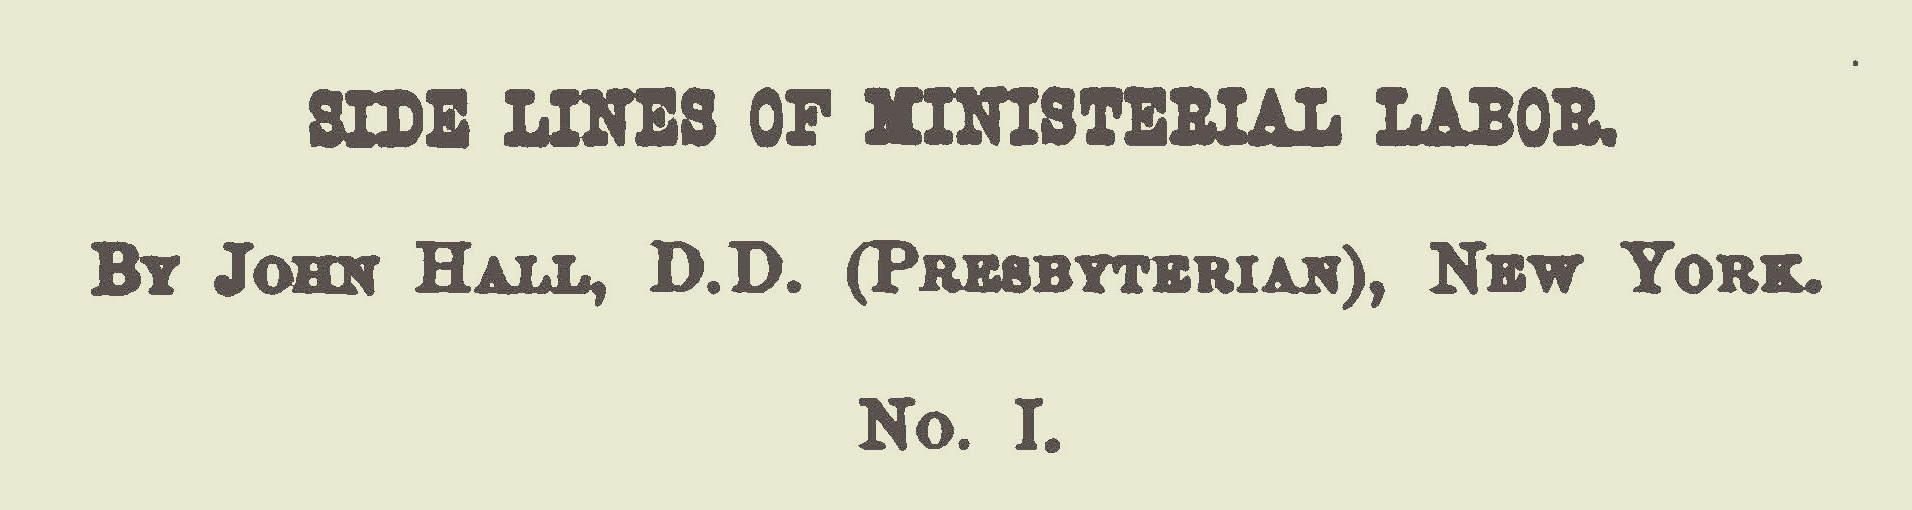 Hall, John, Side Lines of Ministerial Labor No. 1 Title Page.jpg